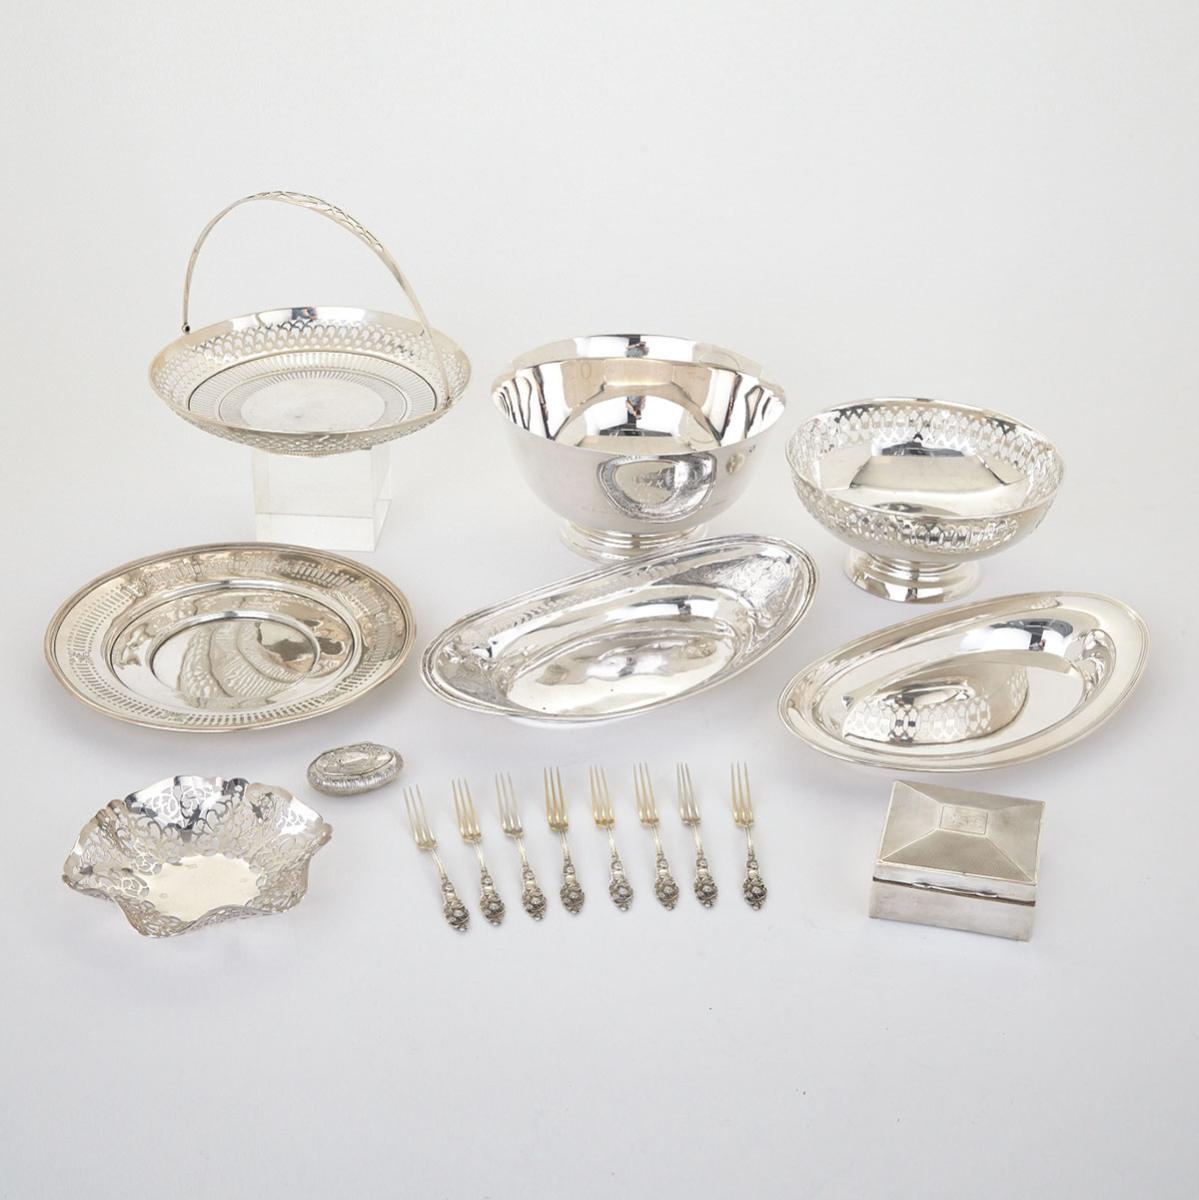 Grouped Lot of Silver Articles, 20th century